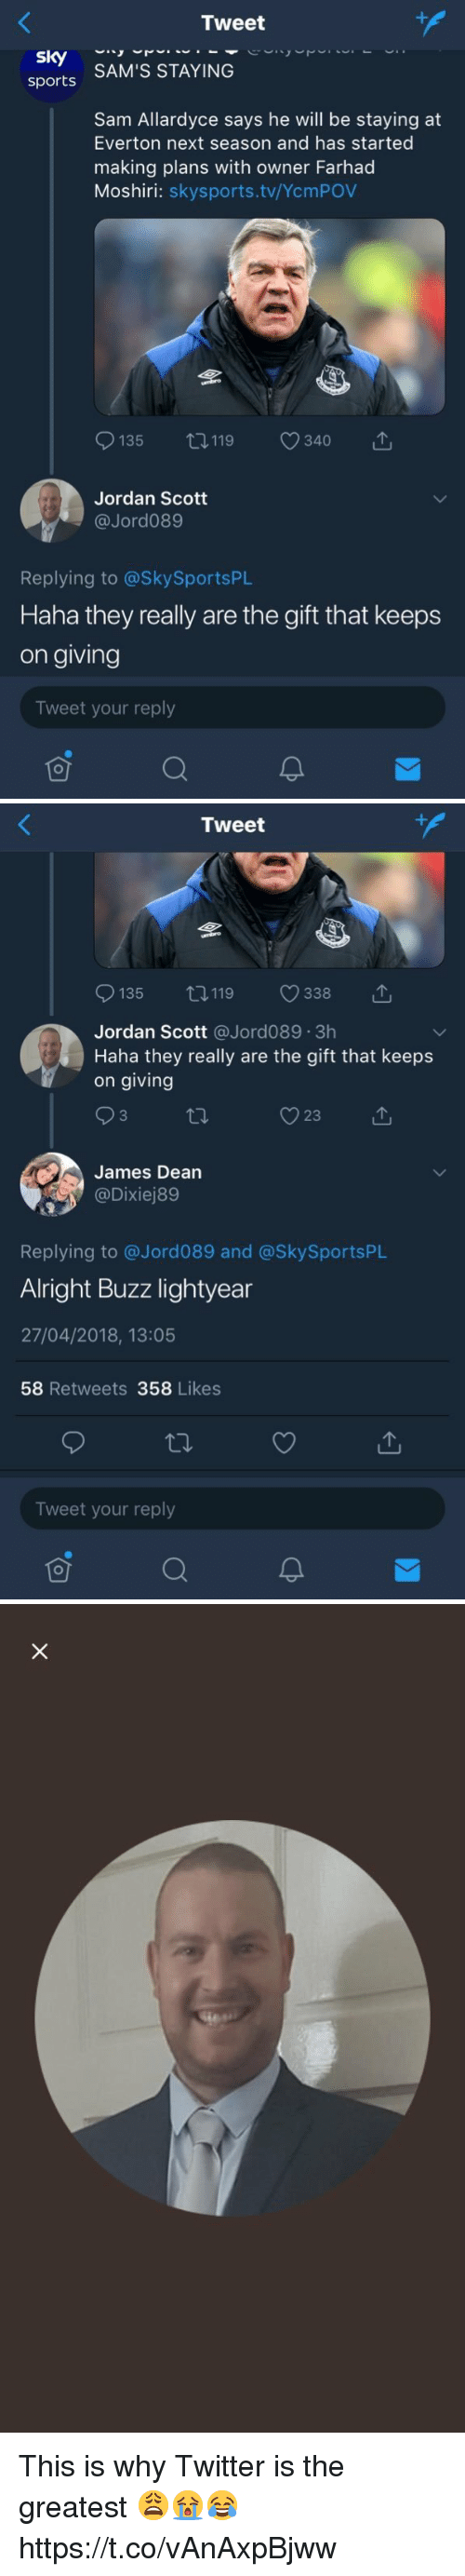 Buzz Lightyear: Tweet  sports SAM'S STAYING  Sam Allardyce says he will be staying at  Everton next season and has started  making plans with owner Farhad  Moshiri: skysports.tv/YcmPOV  9135 119 340 で  Jordan Scott  @Jord089  Replying to @SkySportsPL  Haha they really are the gift that keeps  on giving  Tweet your reply   Tweet  135 0119 338 T  Jordan Scott @Jord089.3h  Haha they really are the gift that keeps  on giving  James Dean  Replying to @Jord089 and @SkySportsPlL  Alright Buzz lightyear  27/04/2018, 13:05  58 Retweets 358 Likes  Tweet your reply This is why Twitter is the greatest 😩😭😂 https://t.co/vAnAxpBjww